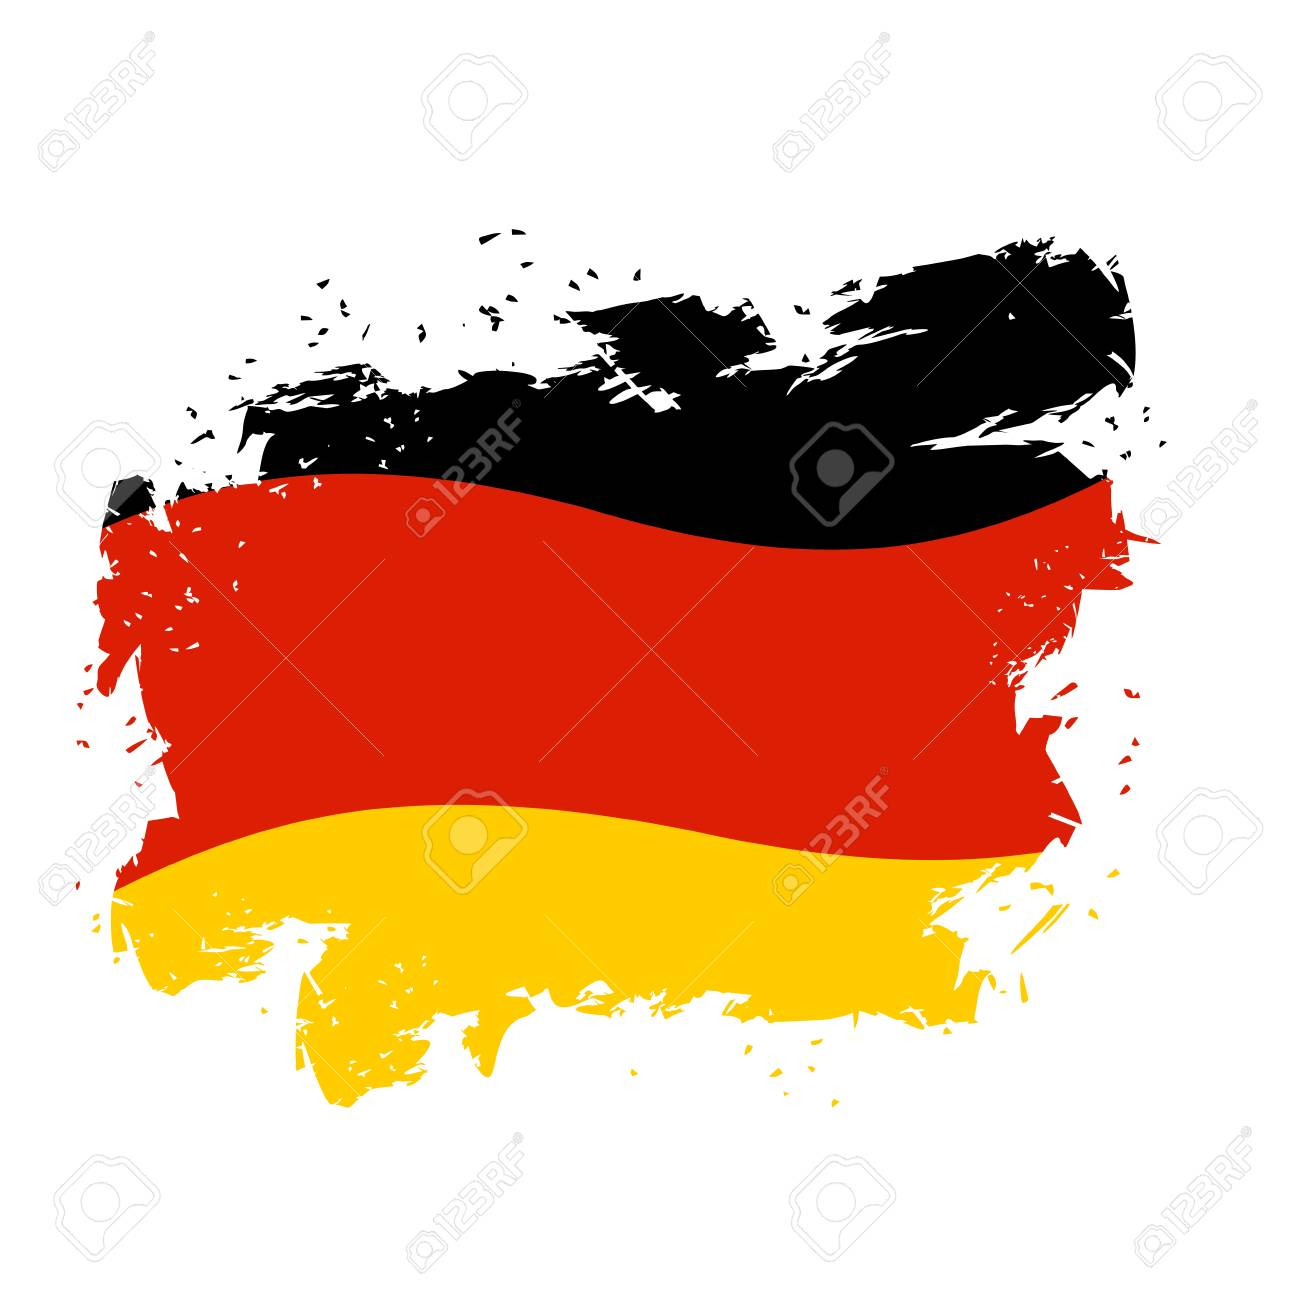 Germany Flag Grunge Style On White Background Brush Strokes Royalty Free Cliparts Vectors And Stock Illustration Image 57175402